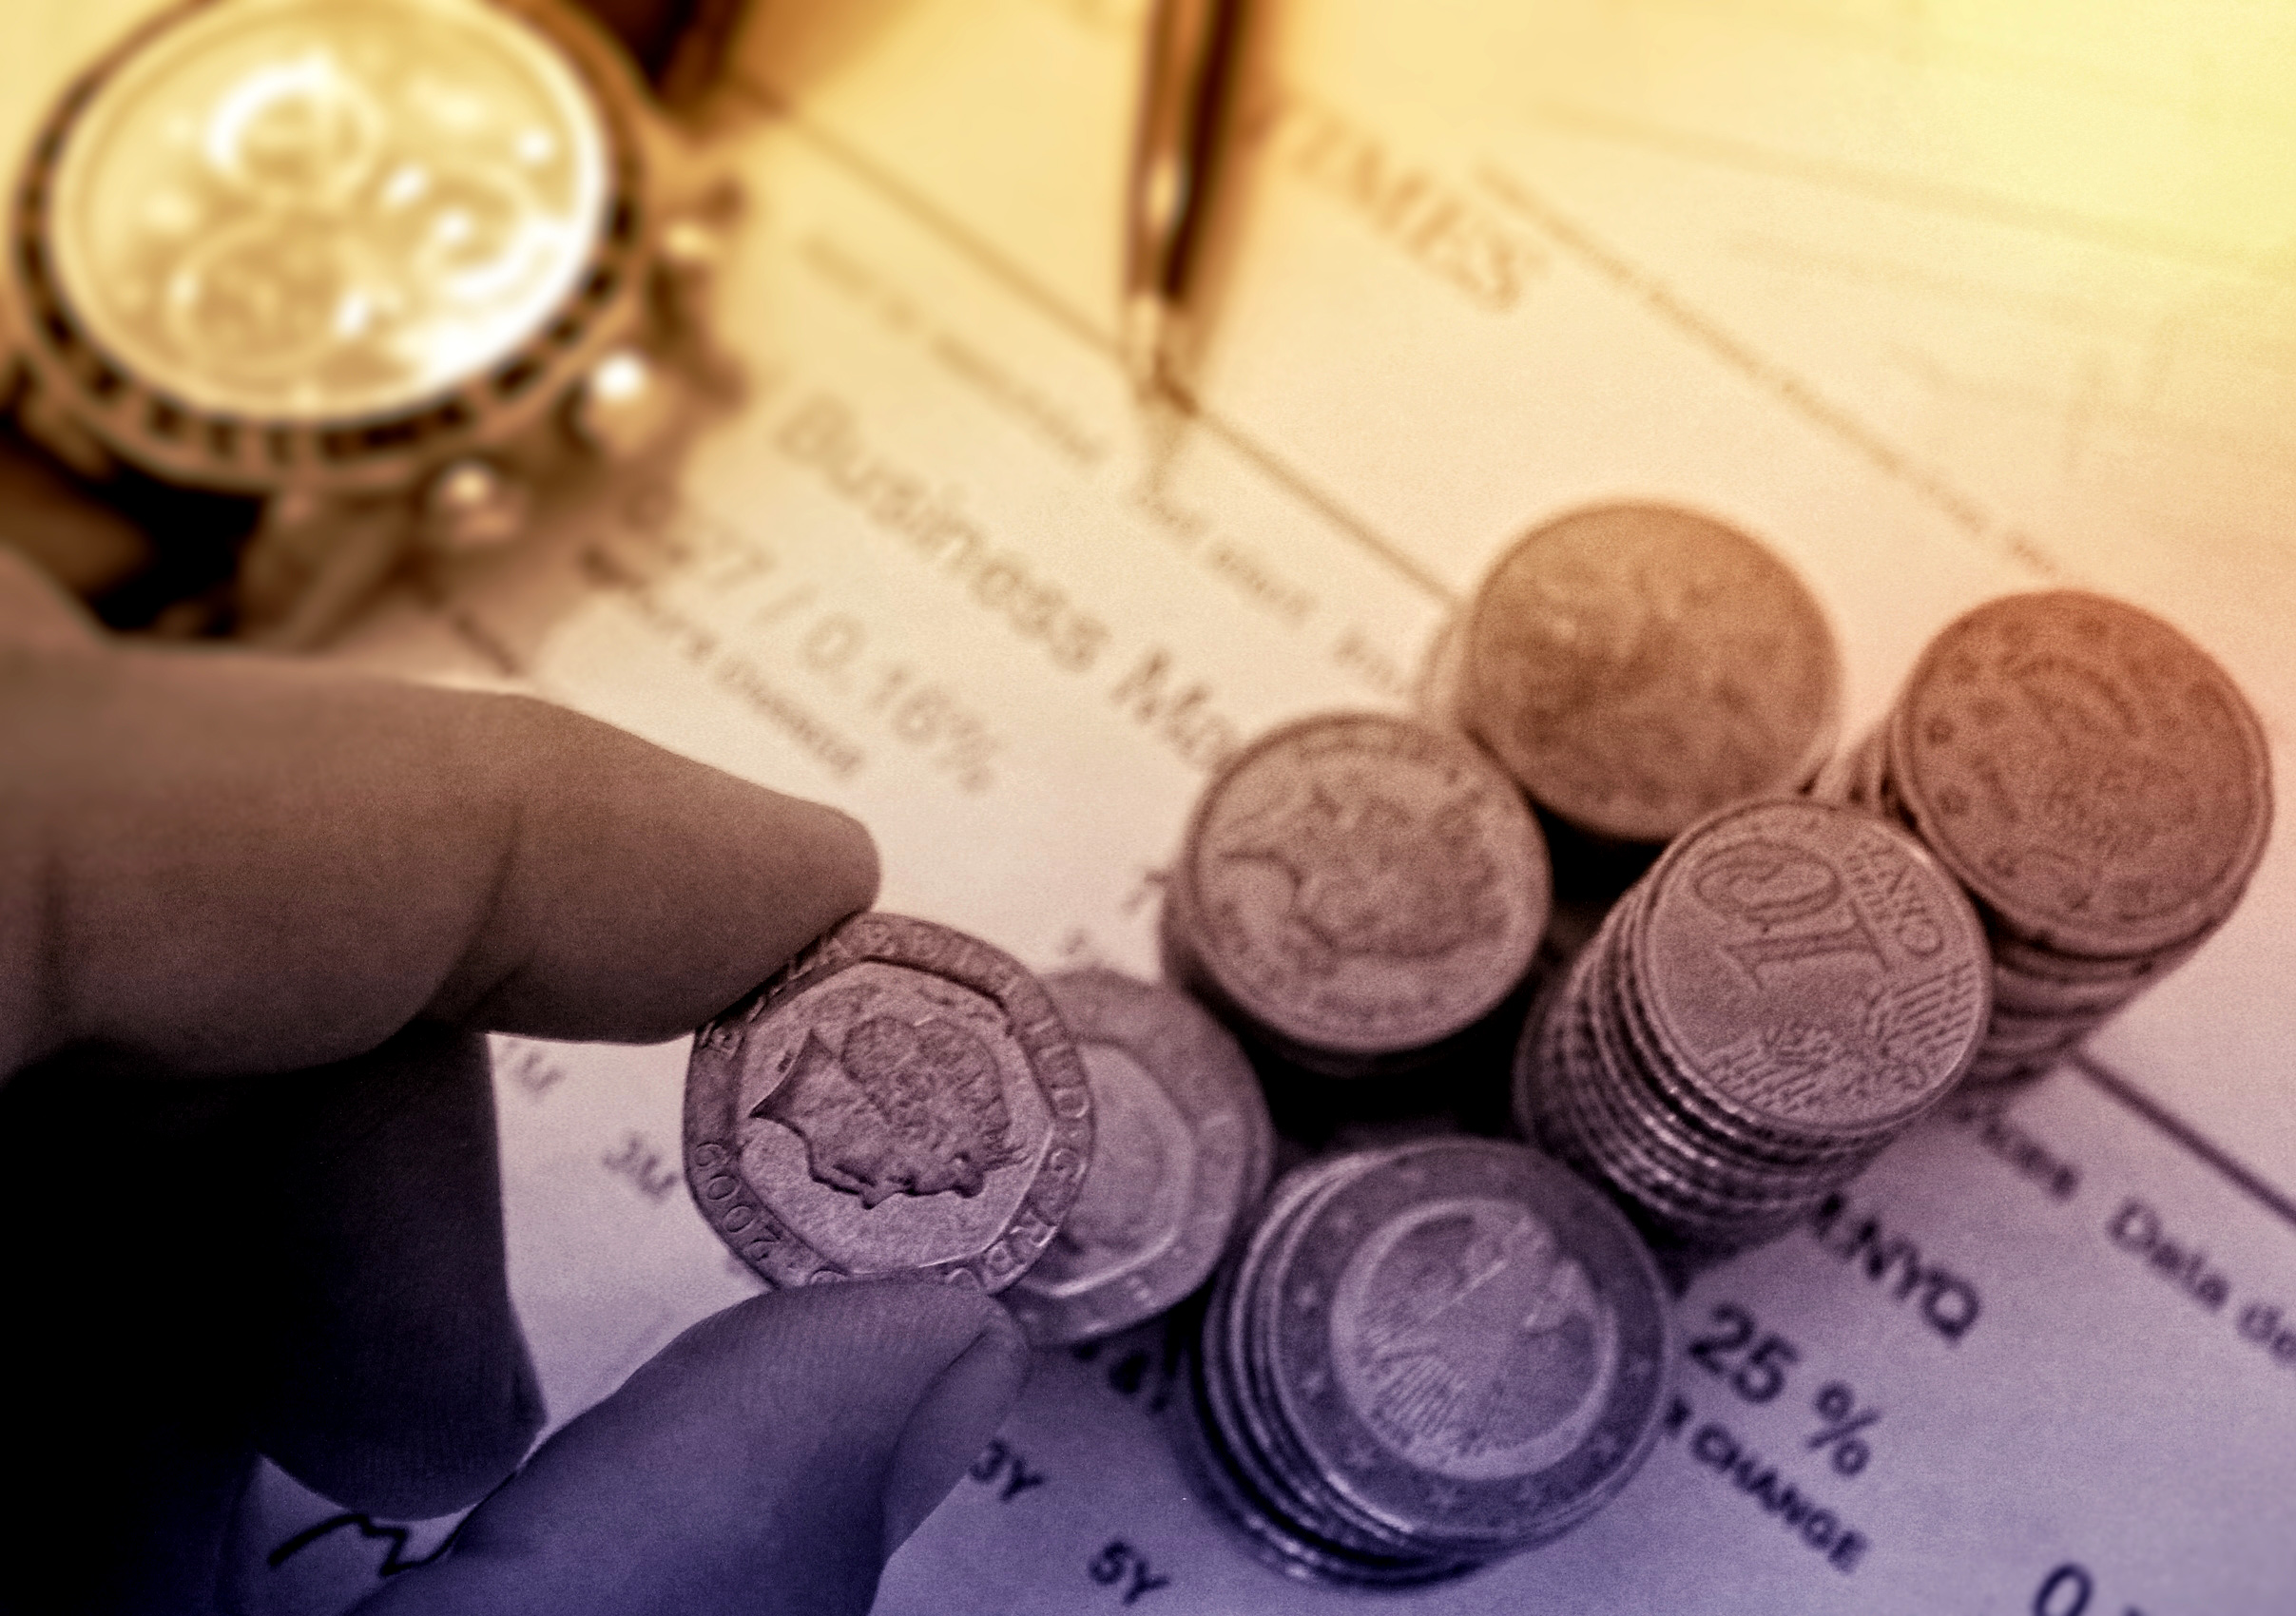 Person Picking a Coin - Money and Finance Concept, Accounting, Object, Price, Pound, HQ Photo